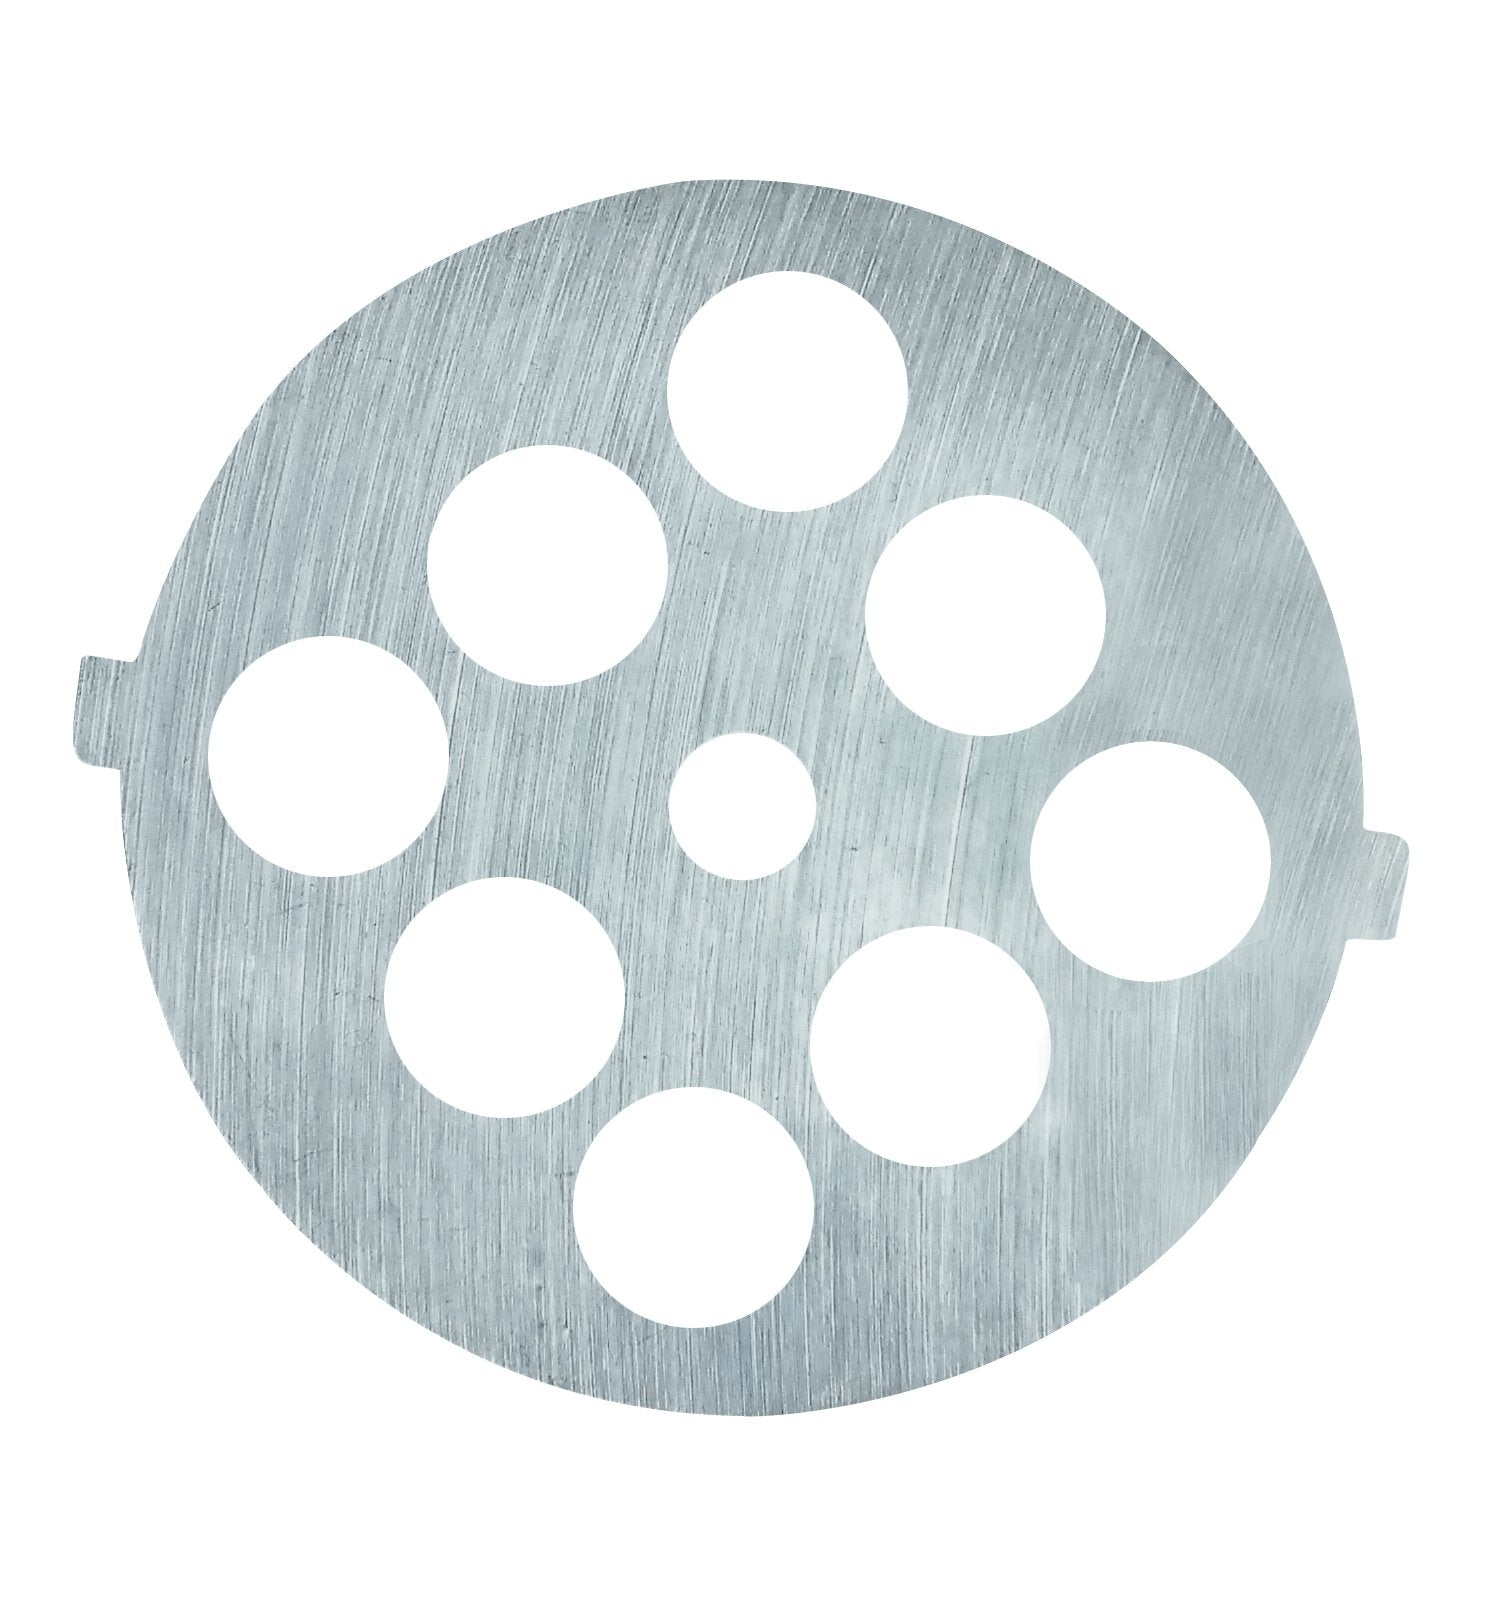 Luvele 12mm stainless steel cutting plate